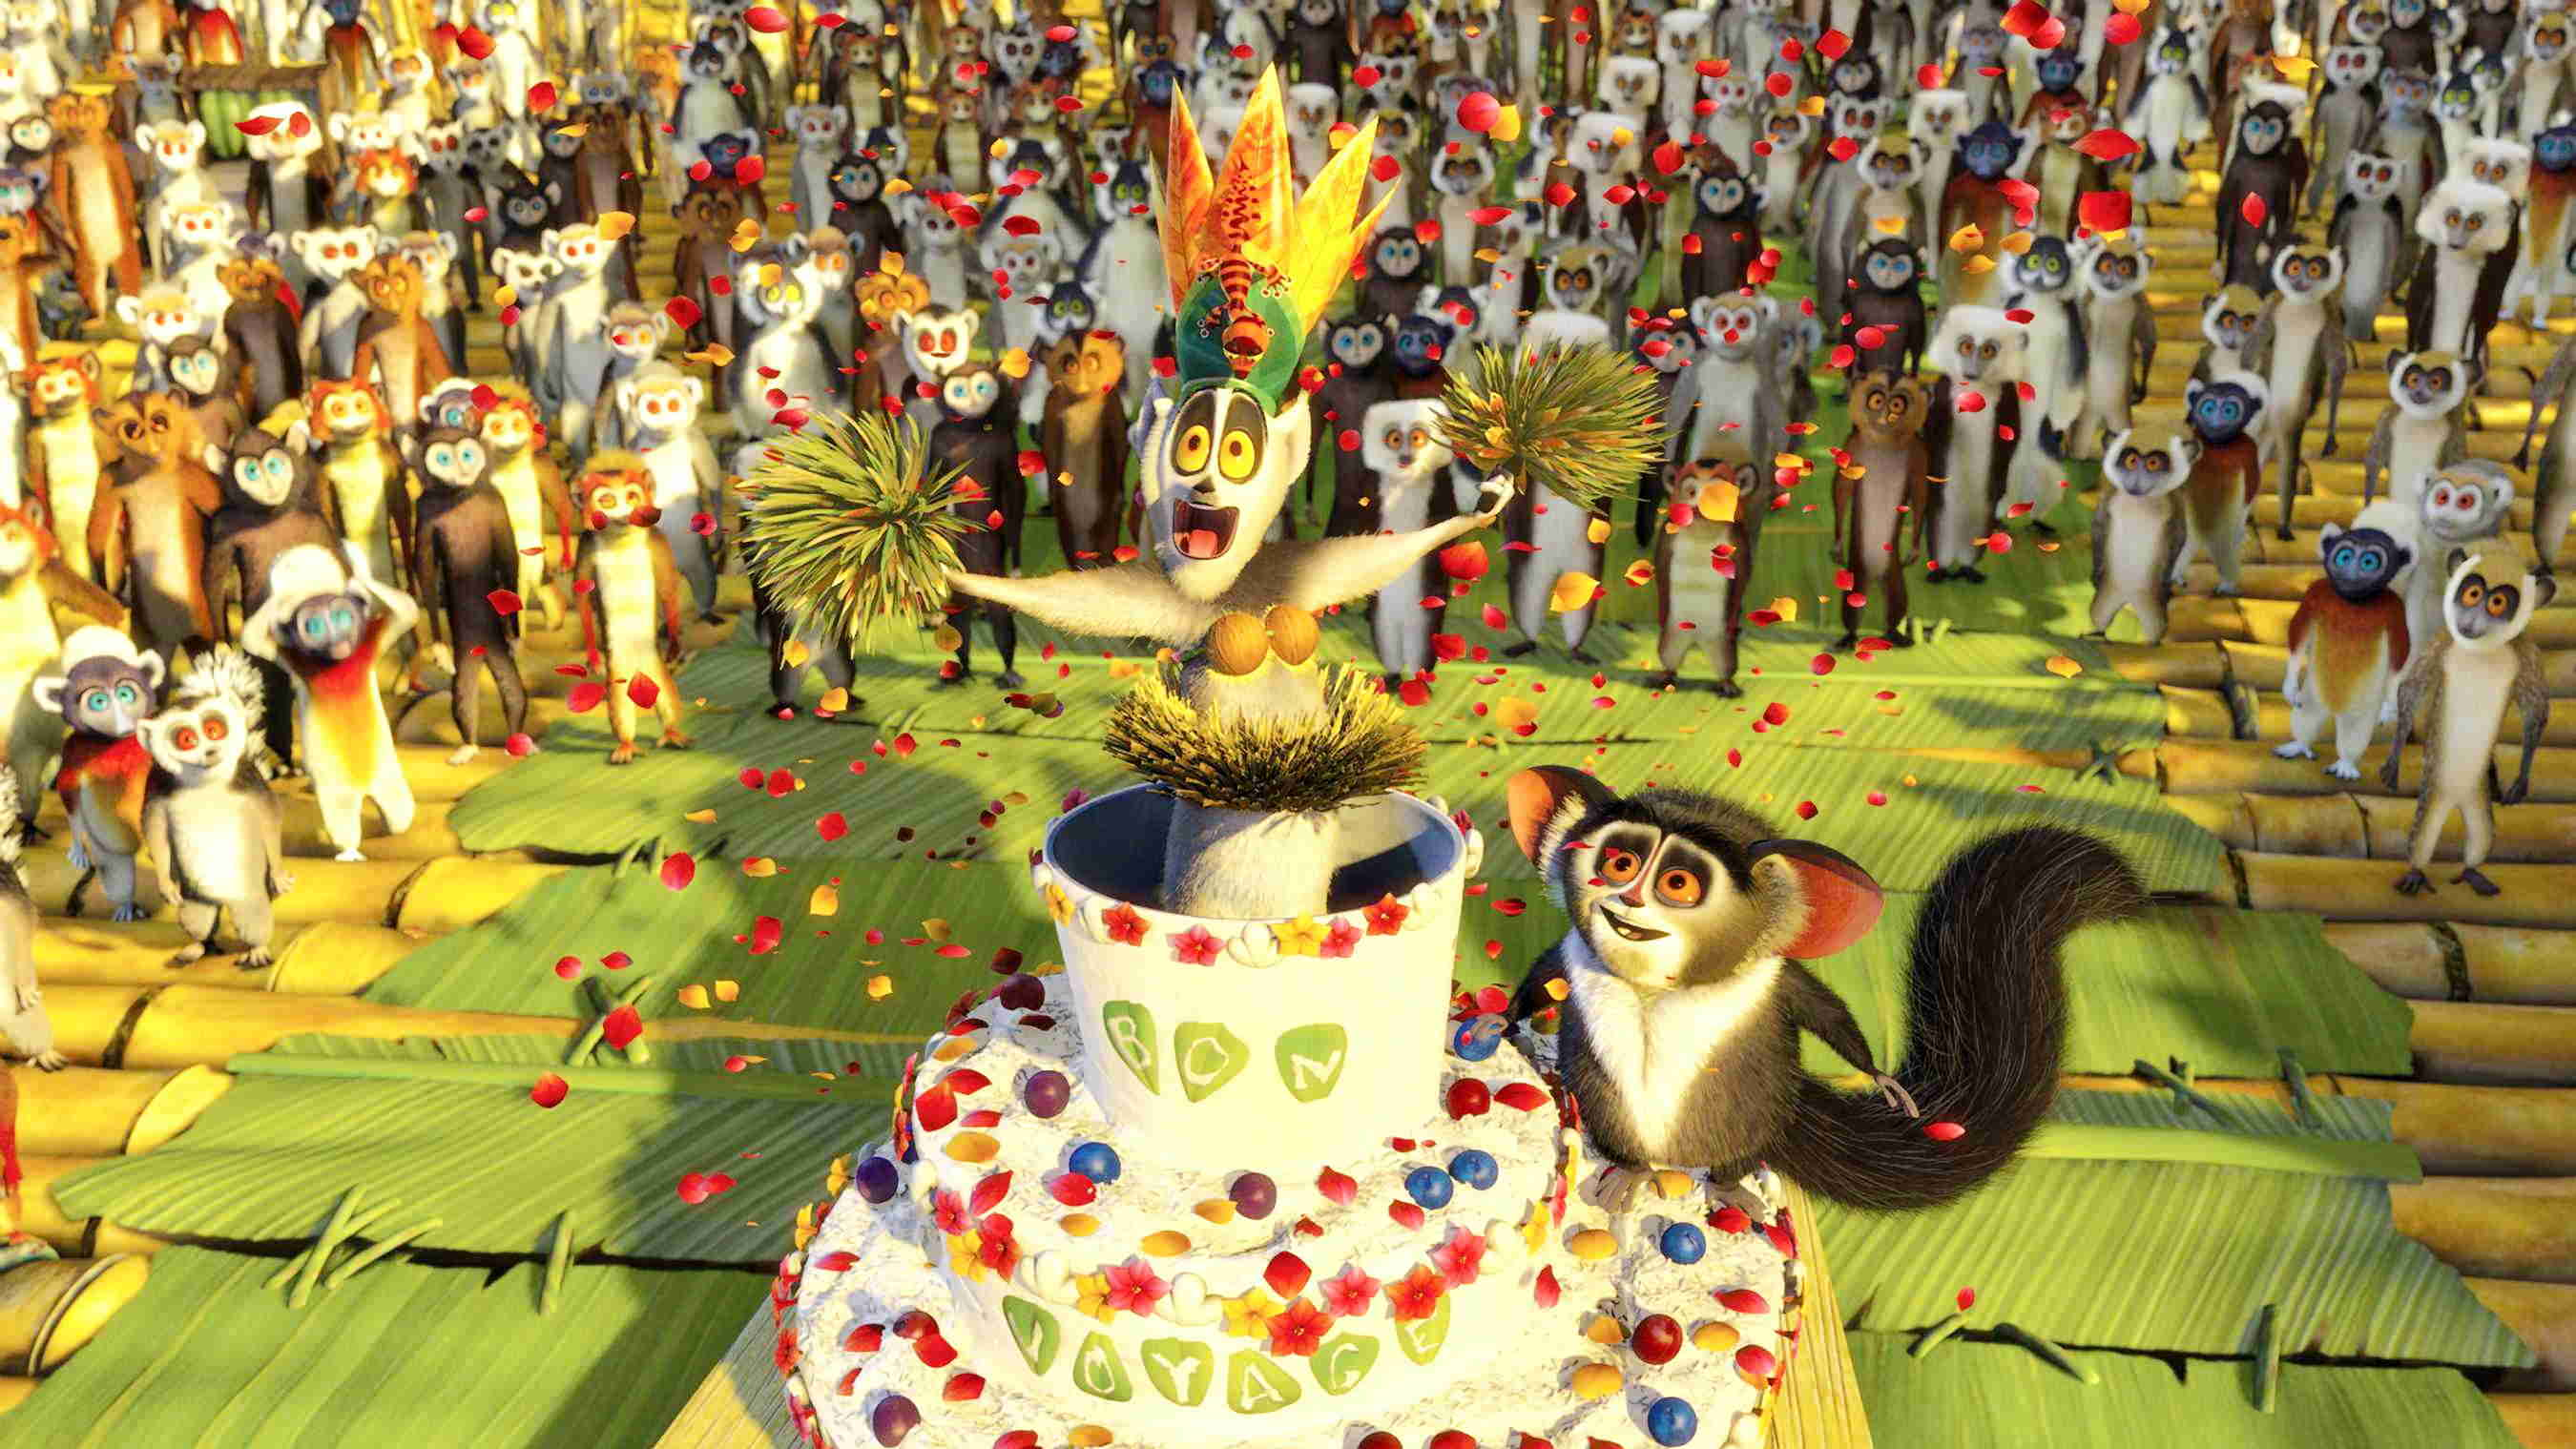 A scene from DreamWorks Pictures' Madagascar: Escape 2 Africa (2008)